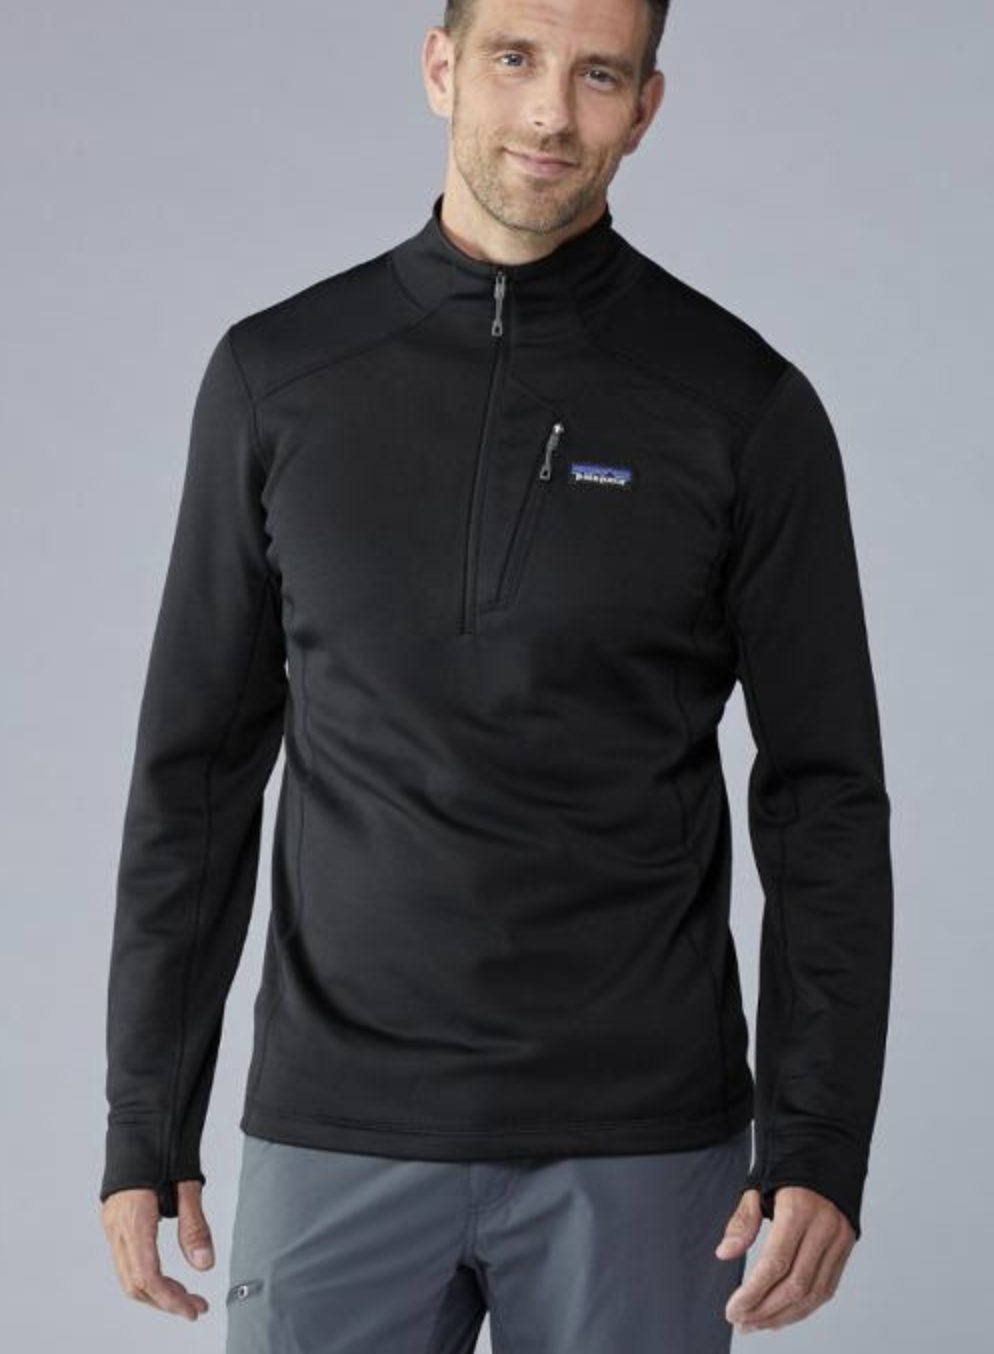 model in black long sleeve quarter-sip fleece